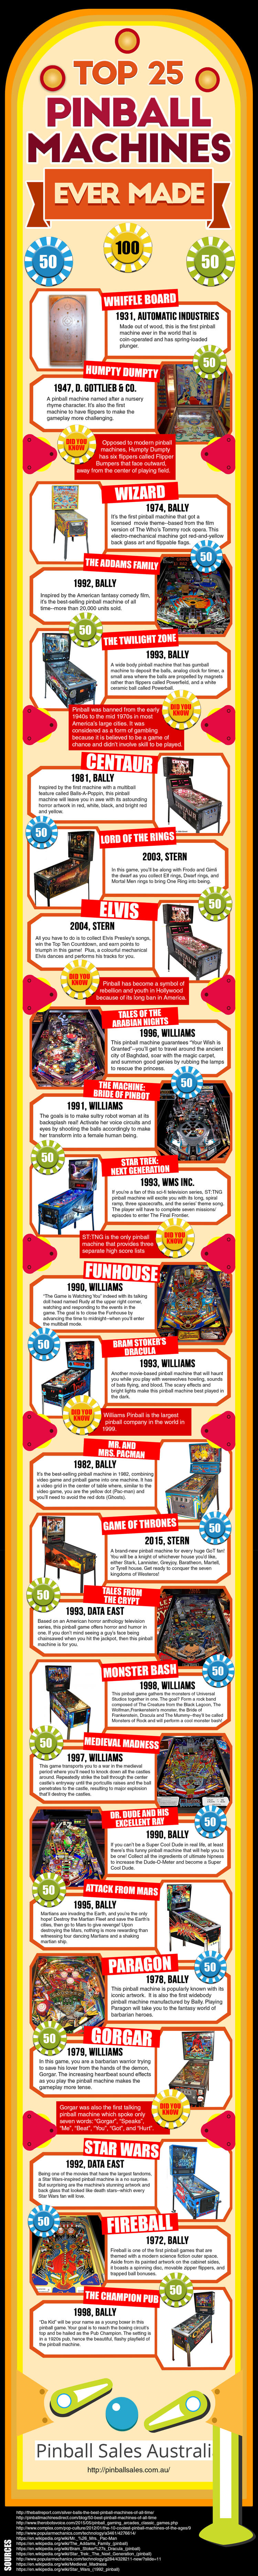 pinball-top-25-infographic-plaza